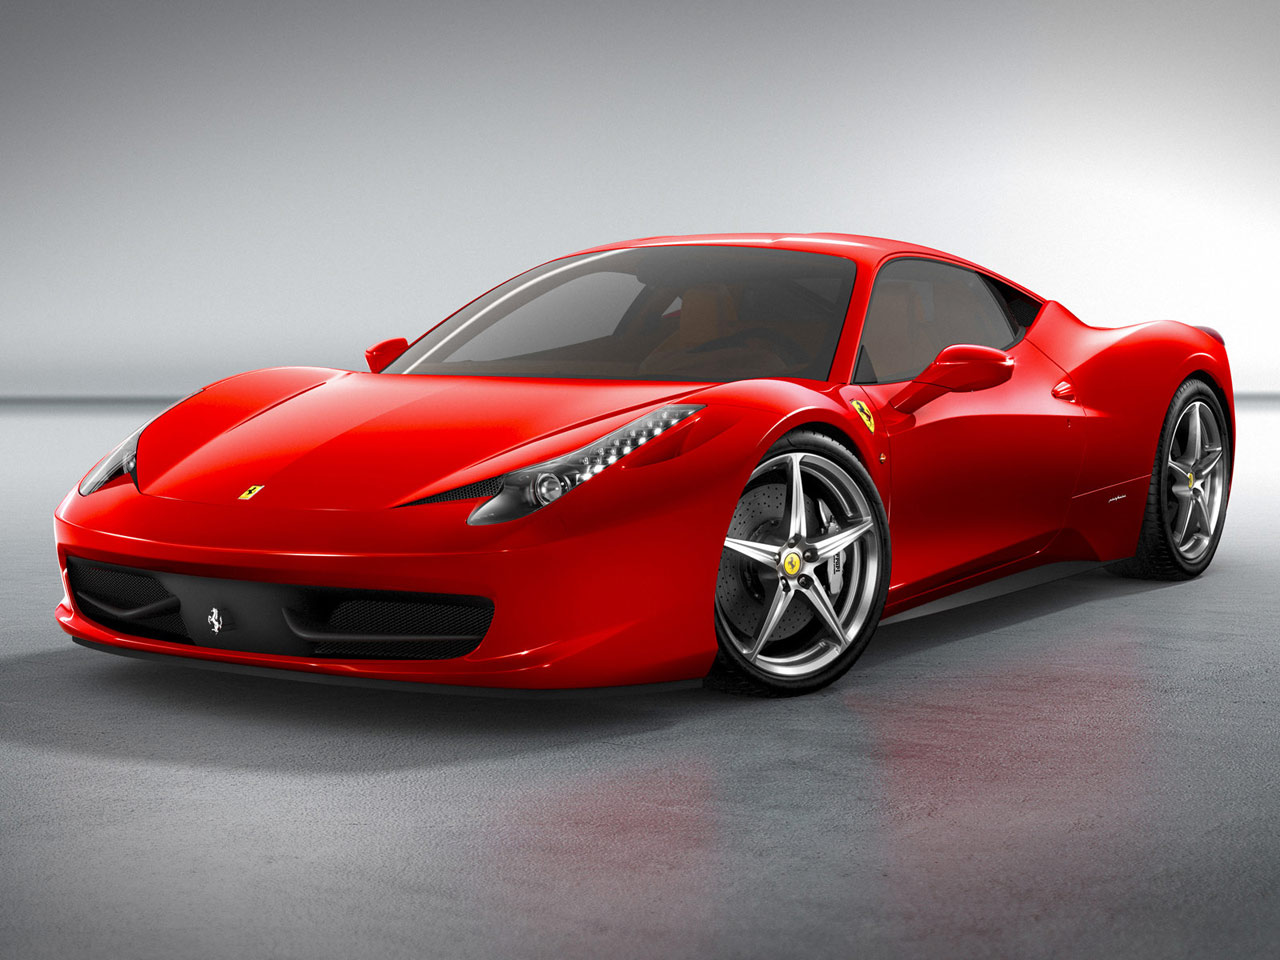 The 2011 Ferrari 458 Italia Lxry Magazine Canadian